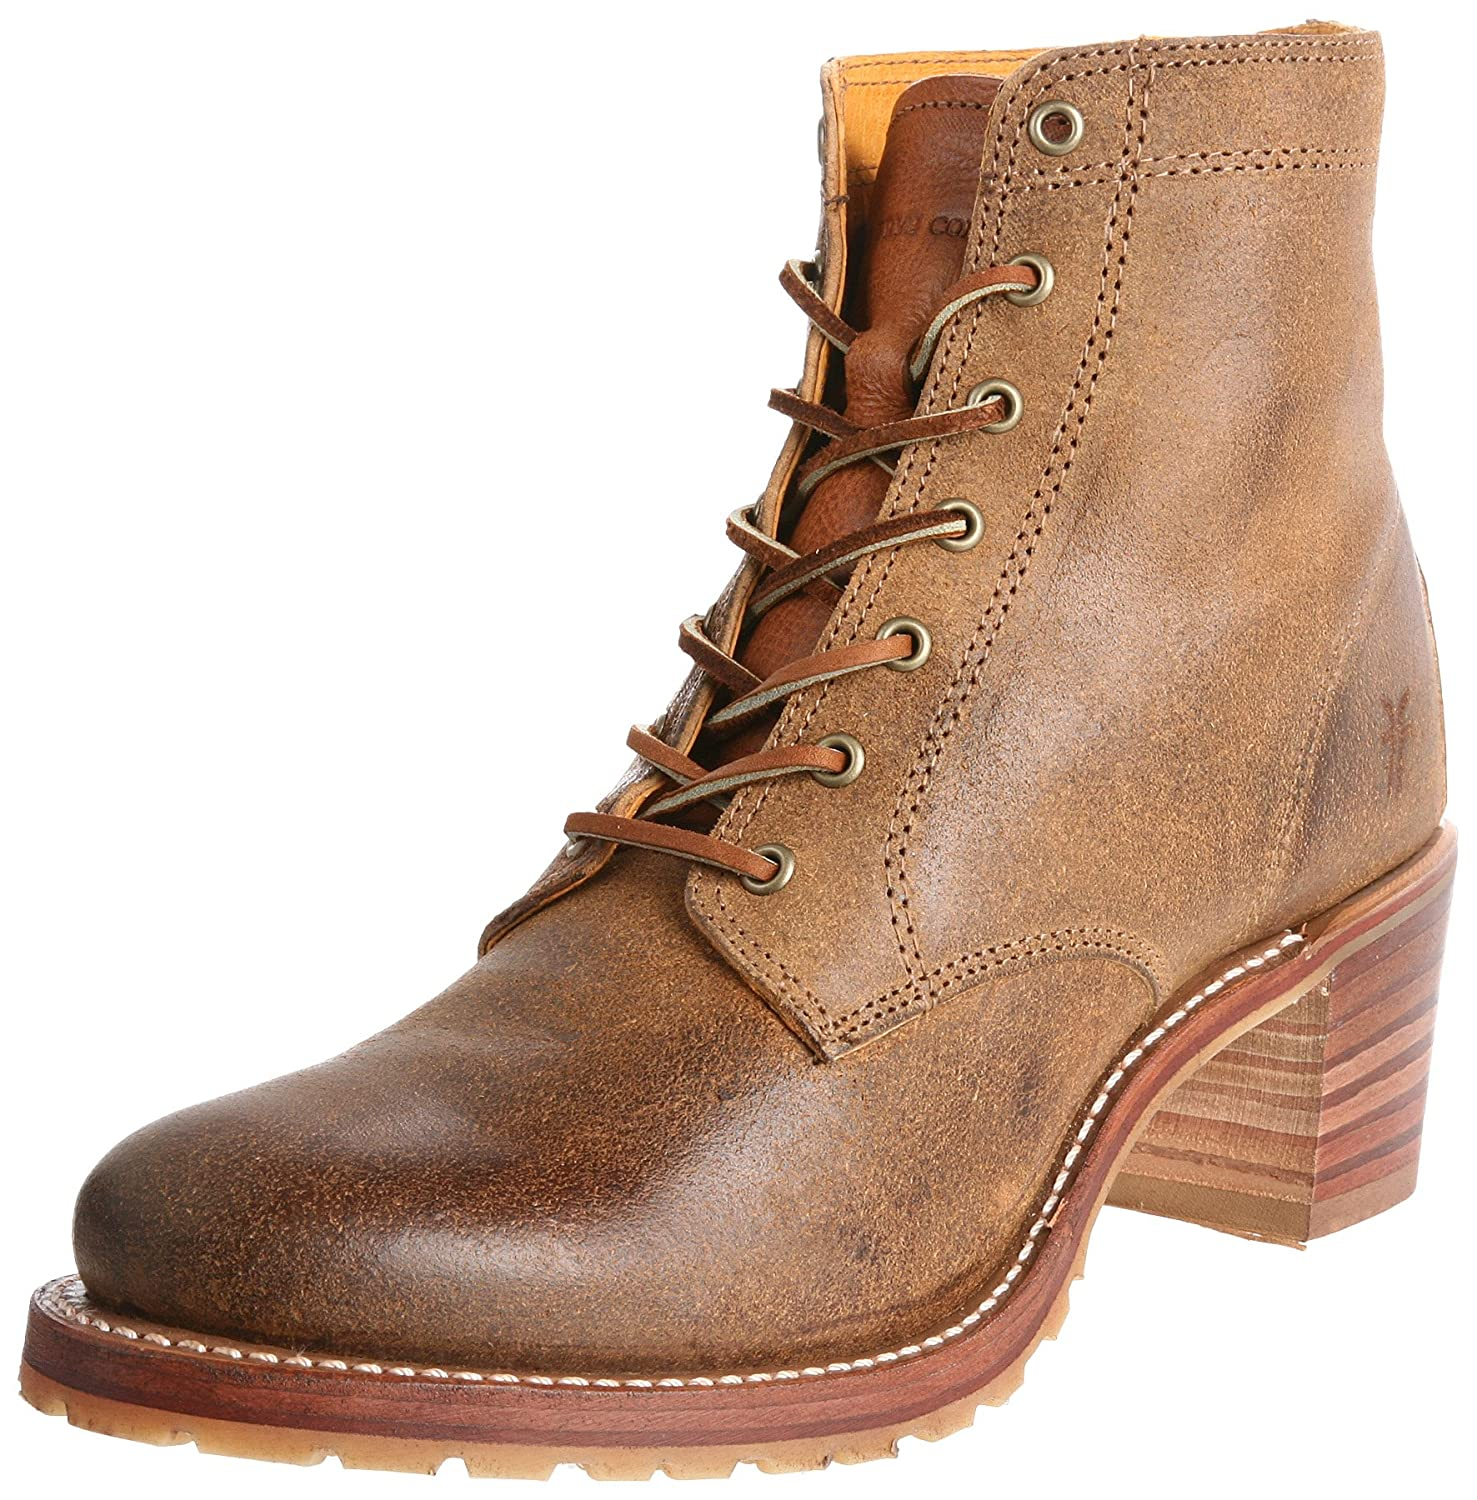 FRYE Women's Sabrina 6G Lace-Up Boot B004GTQQHW 10 B(M) US|Tan-77591